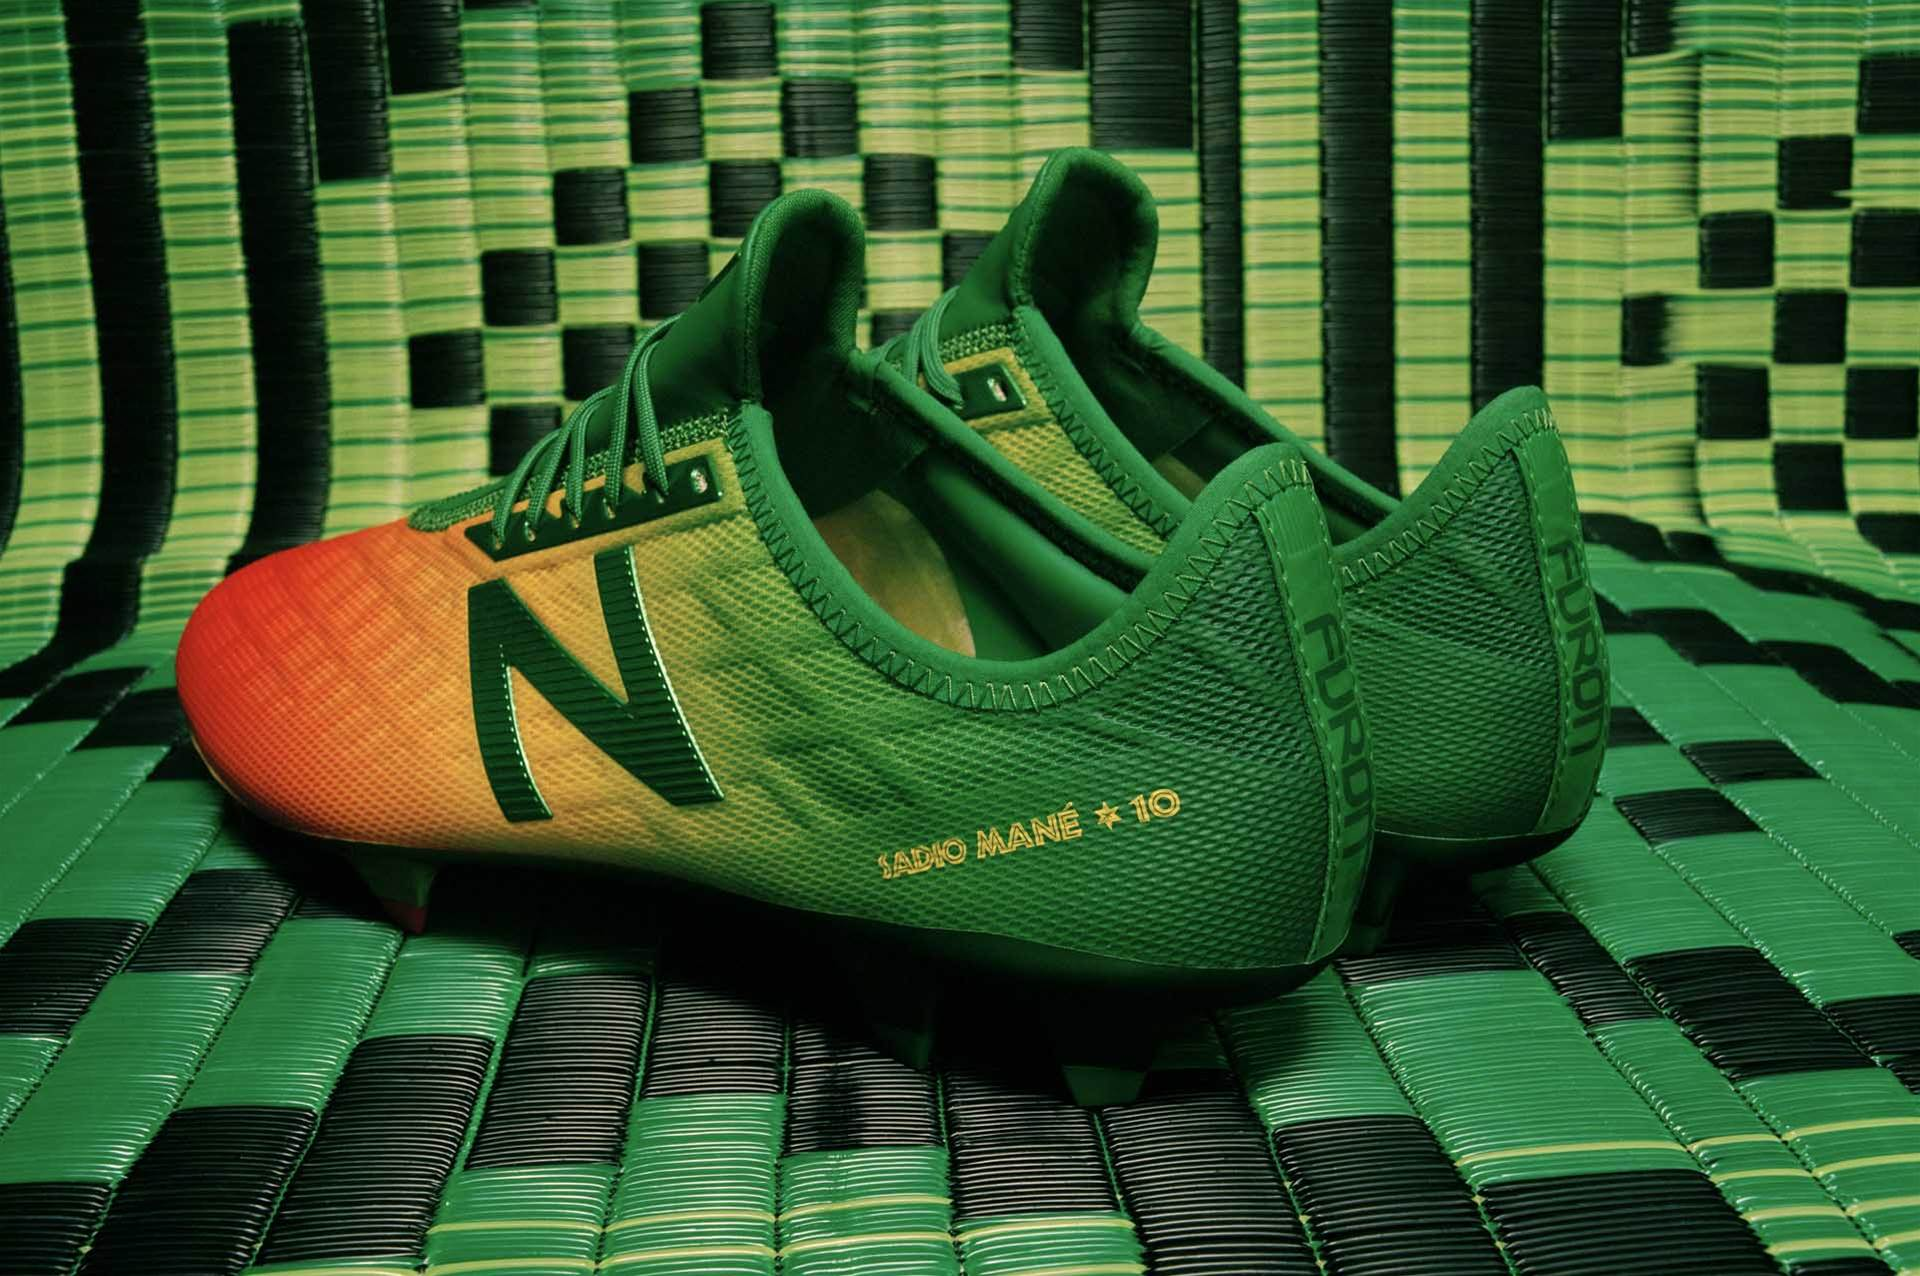 Sadio Mane celebrates Senegalese roots with new boots